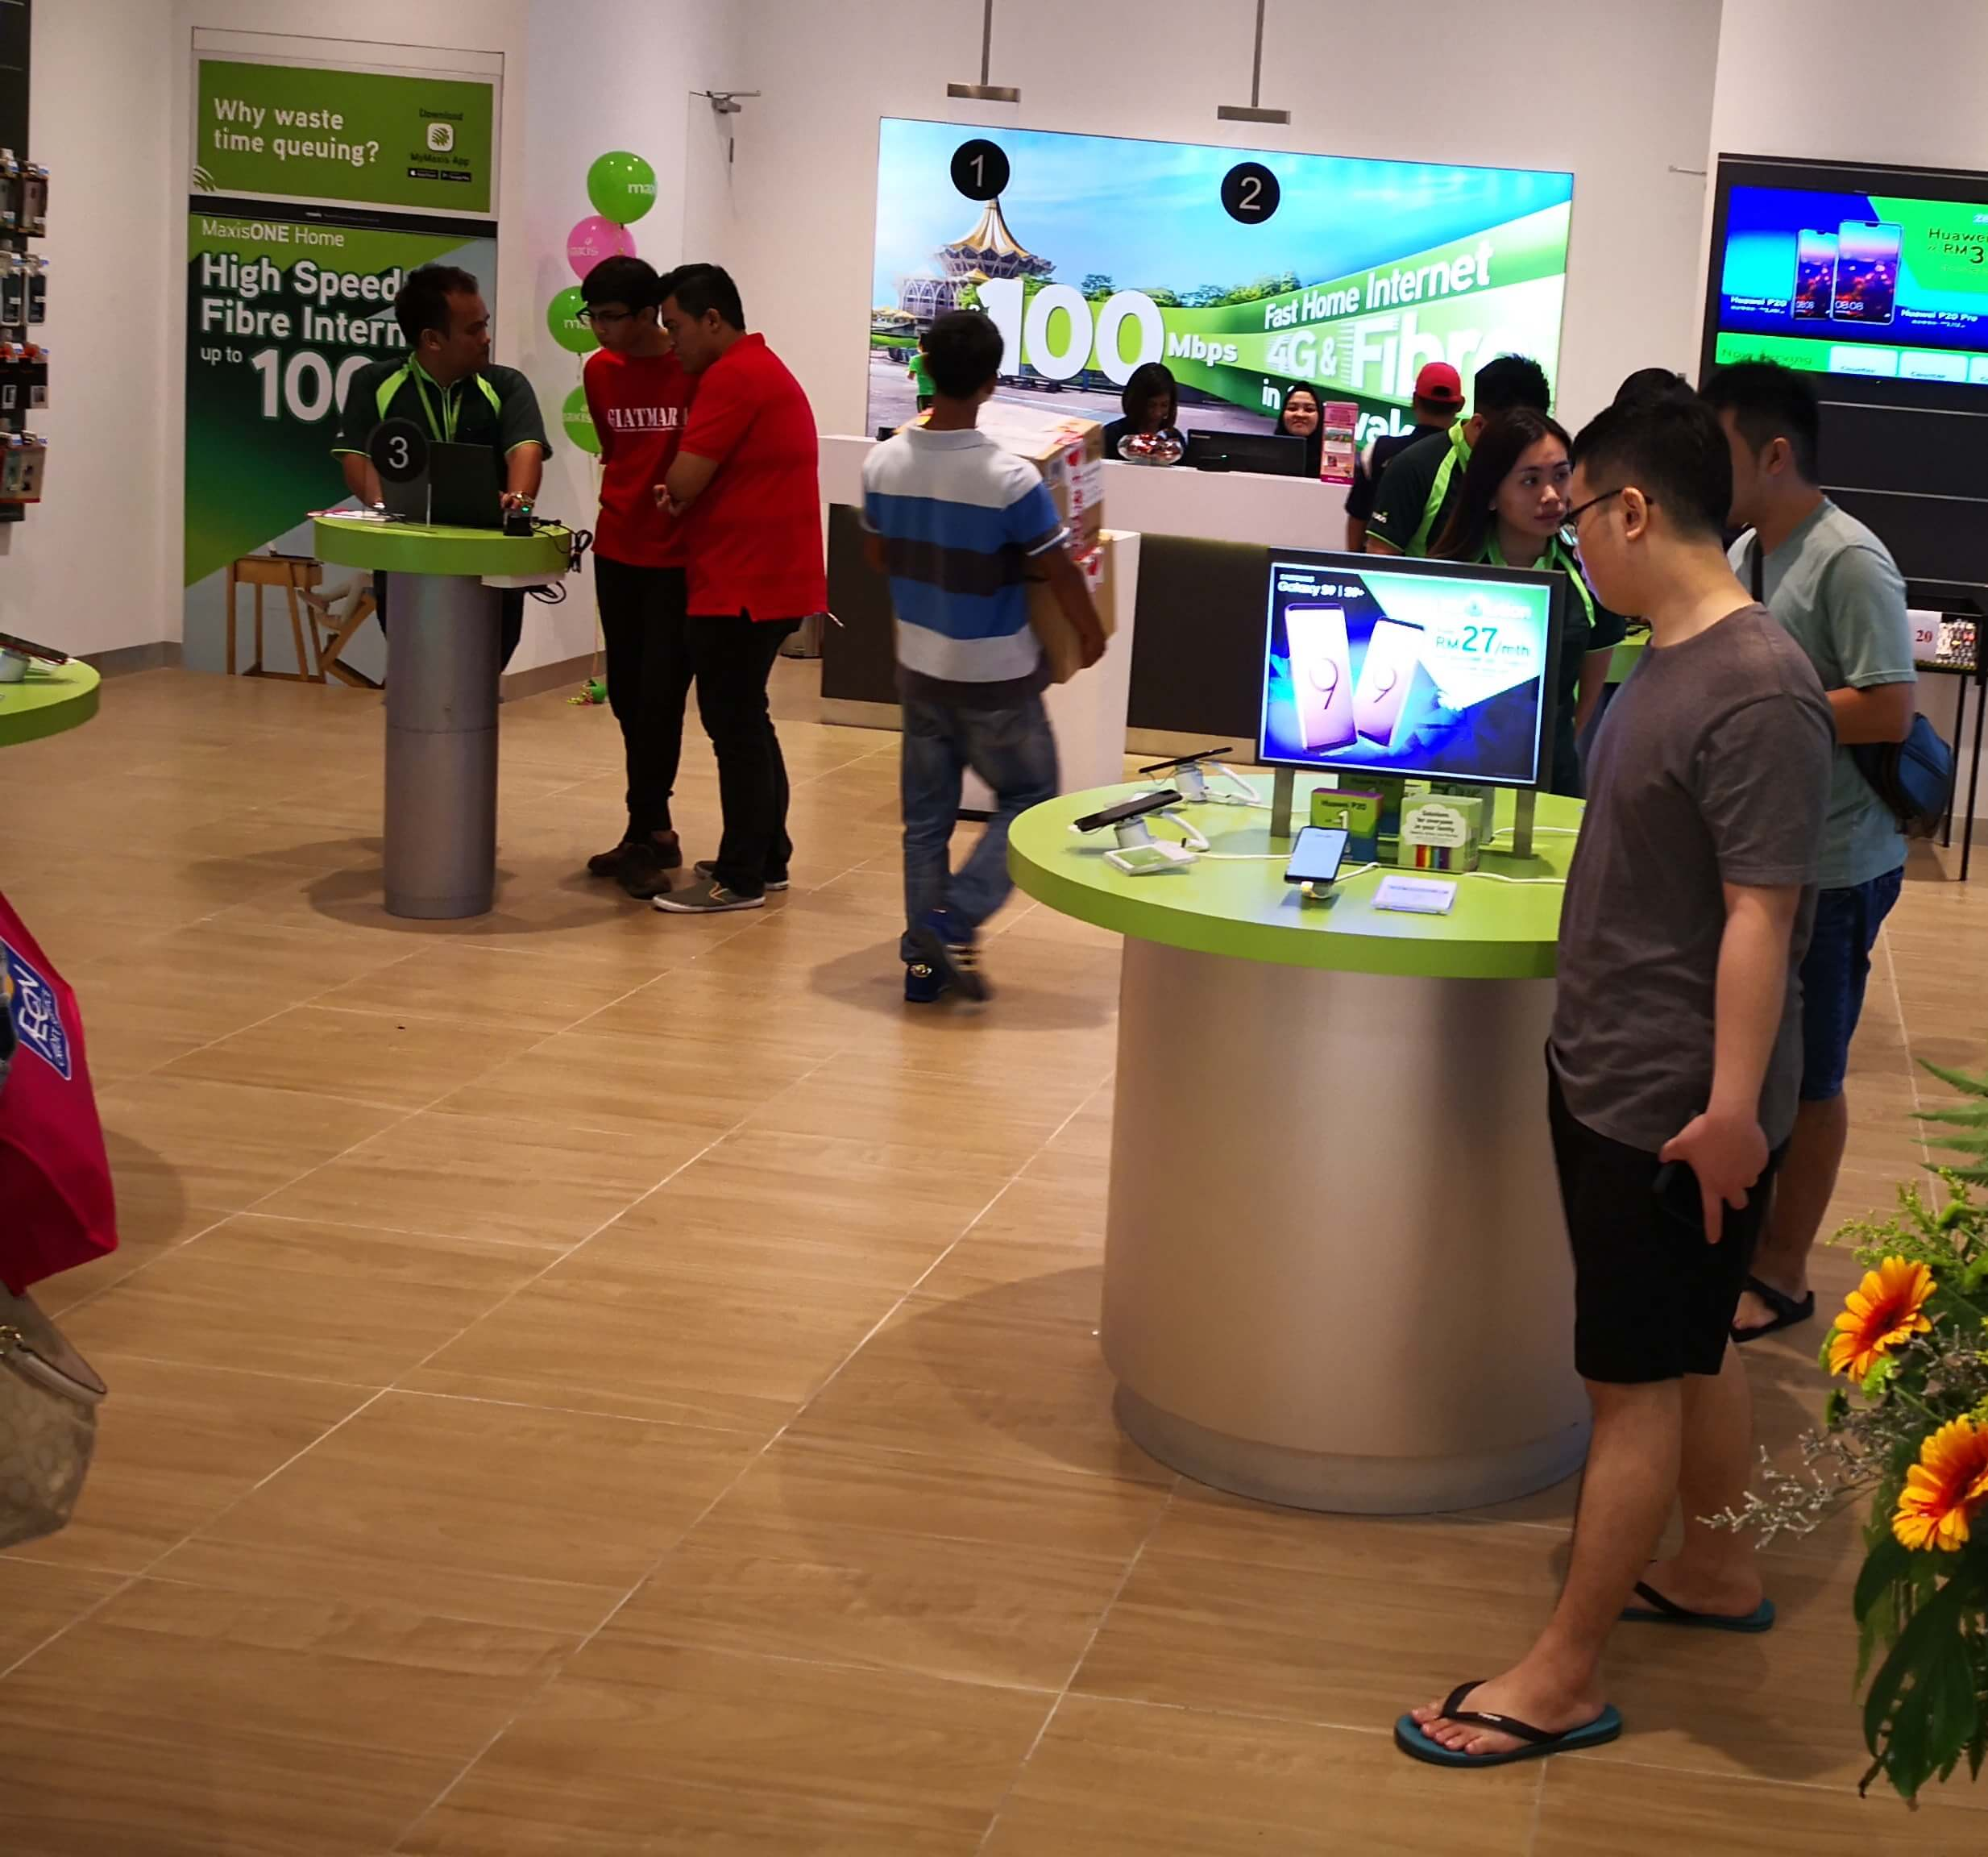 Inside the Maxis store